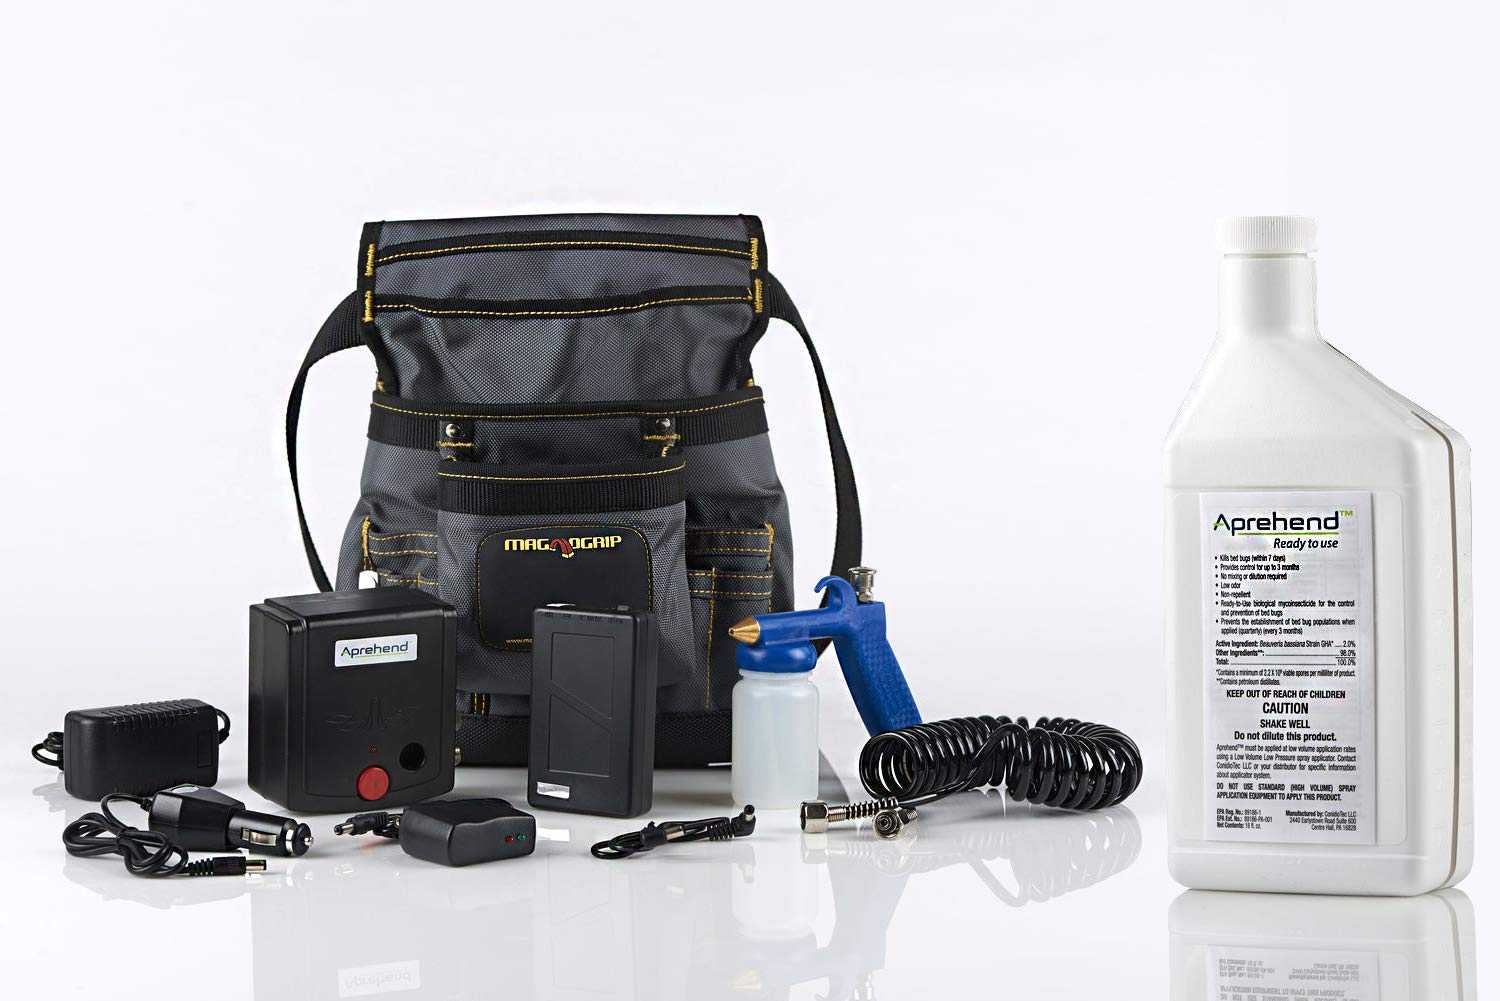 Features Ingredients and How to use Aprehend Low Volume Sprayer Kit for Getting Rid of and Killing Bed Bugs for Good